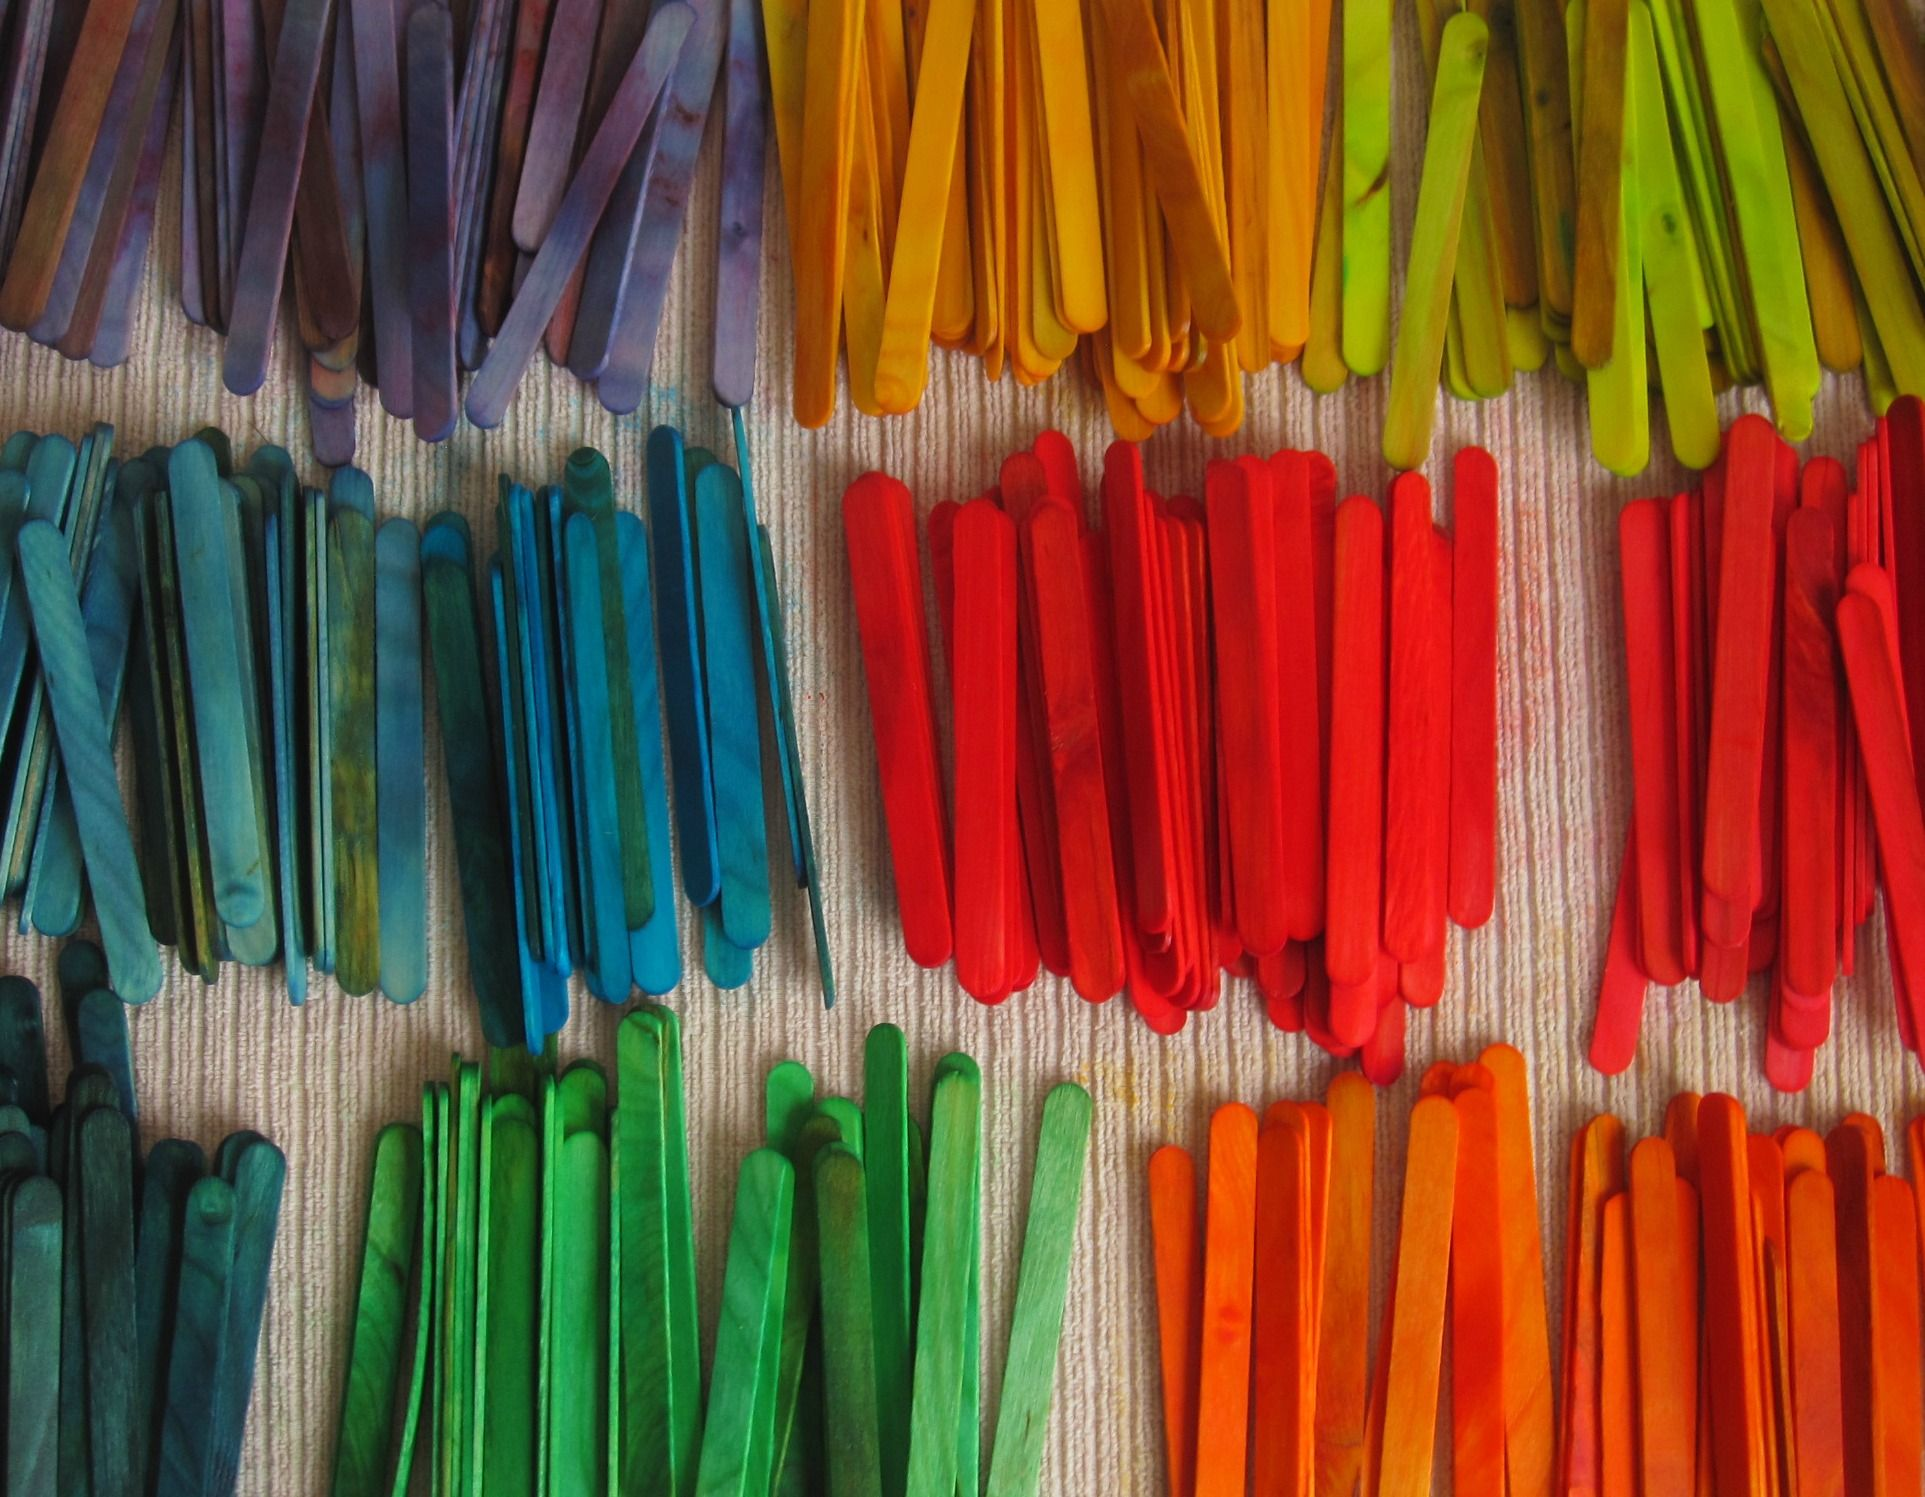 Diy Stained Popsicle Sticks With Food Coloring Popsicle Sticks